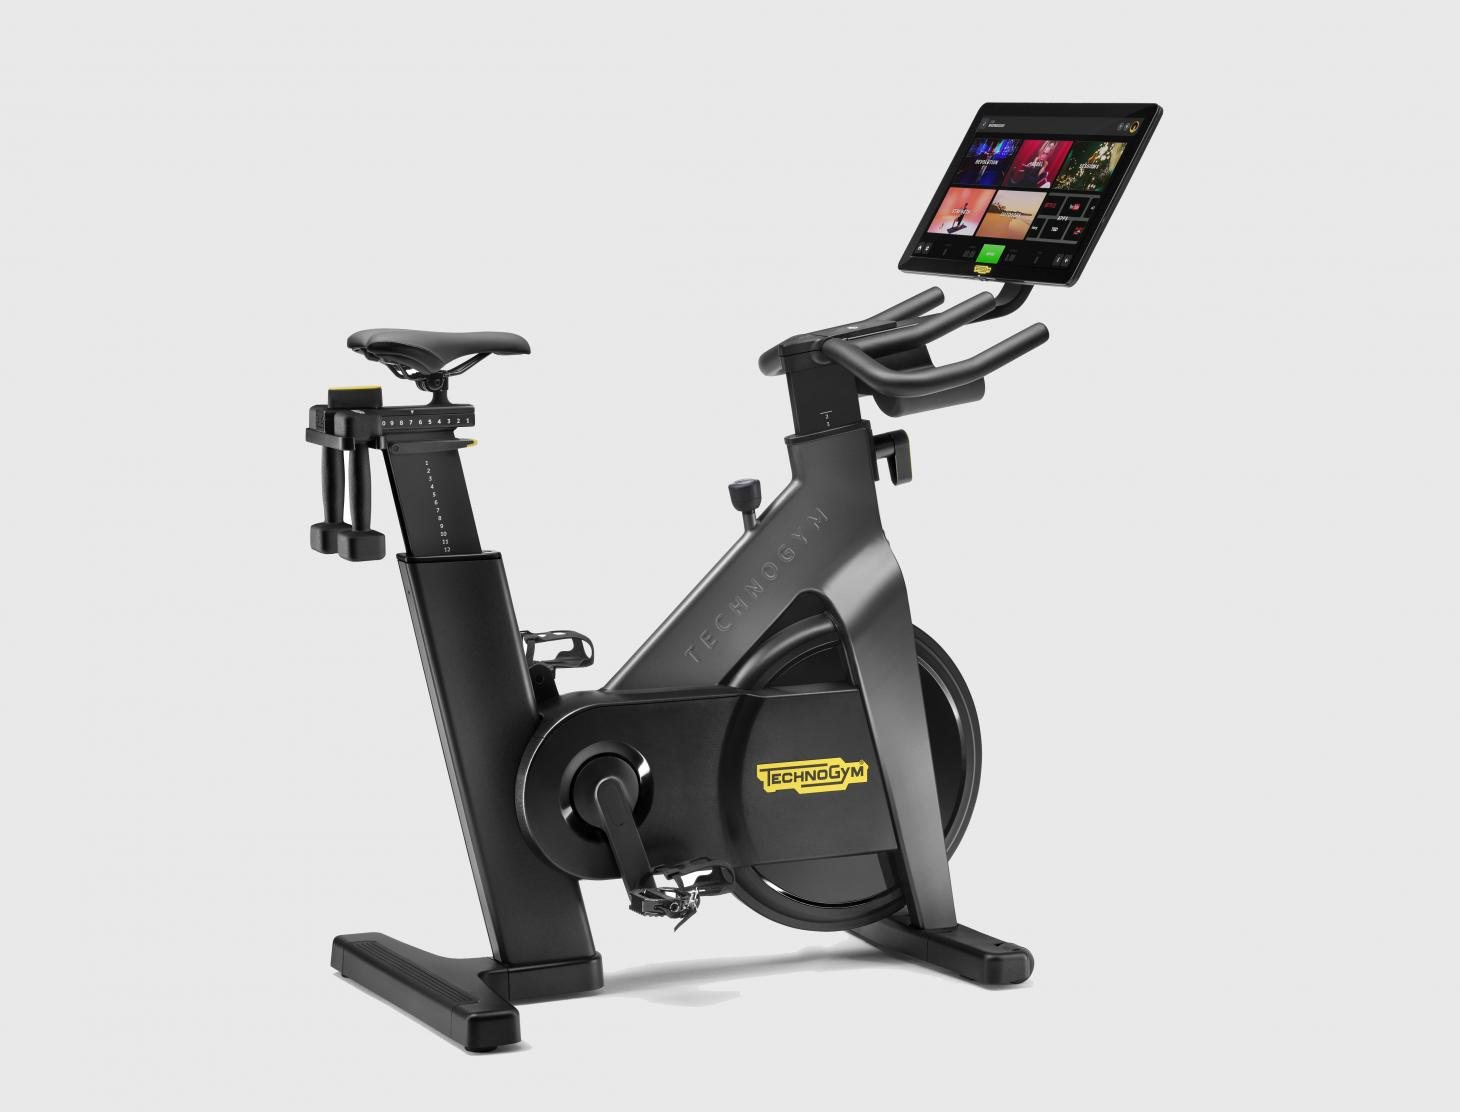 Black Technogym electric bicycle with monitor